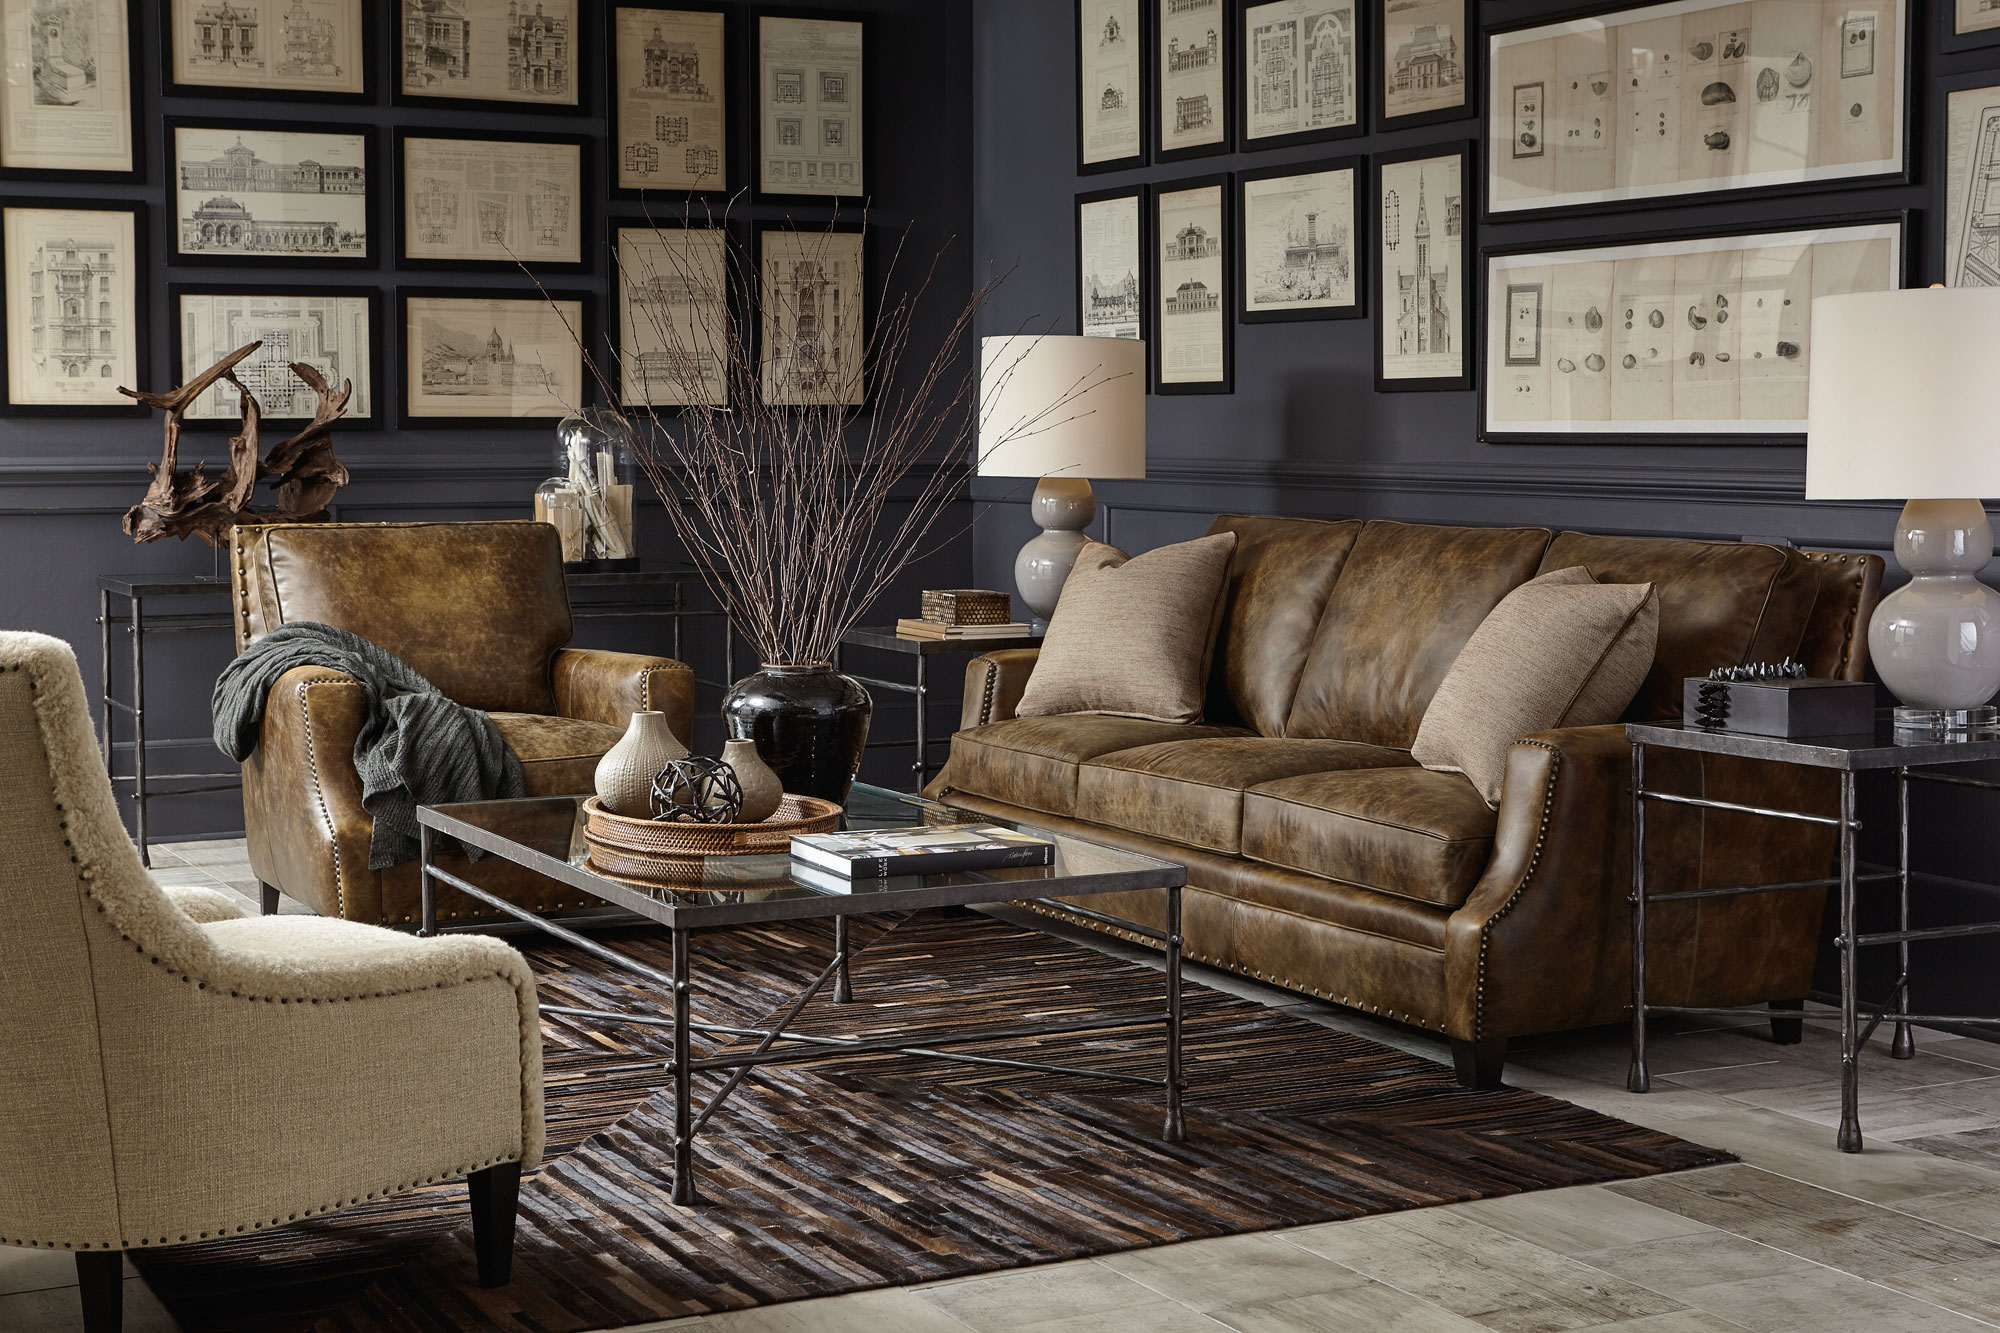 accent chairs to go with brown leather sofa 3 cushion slipcovers canada pollard living room bernhardt